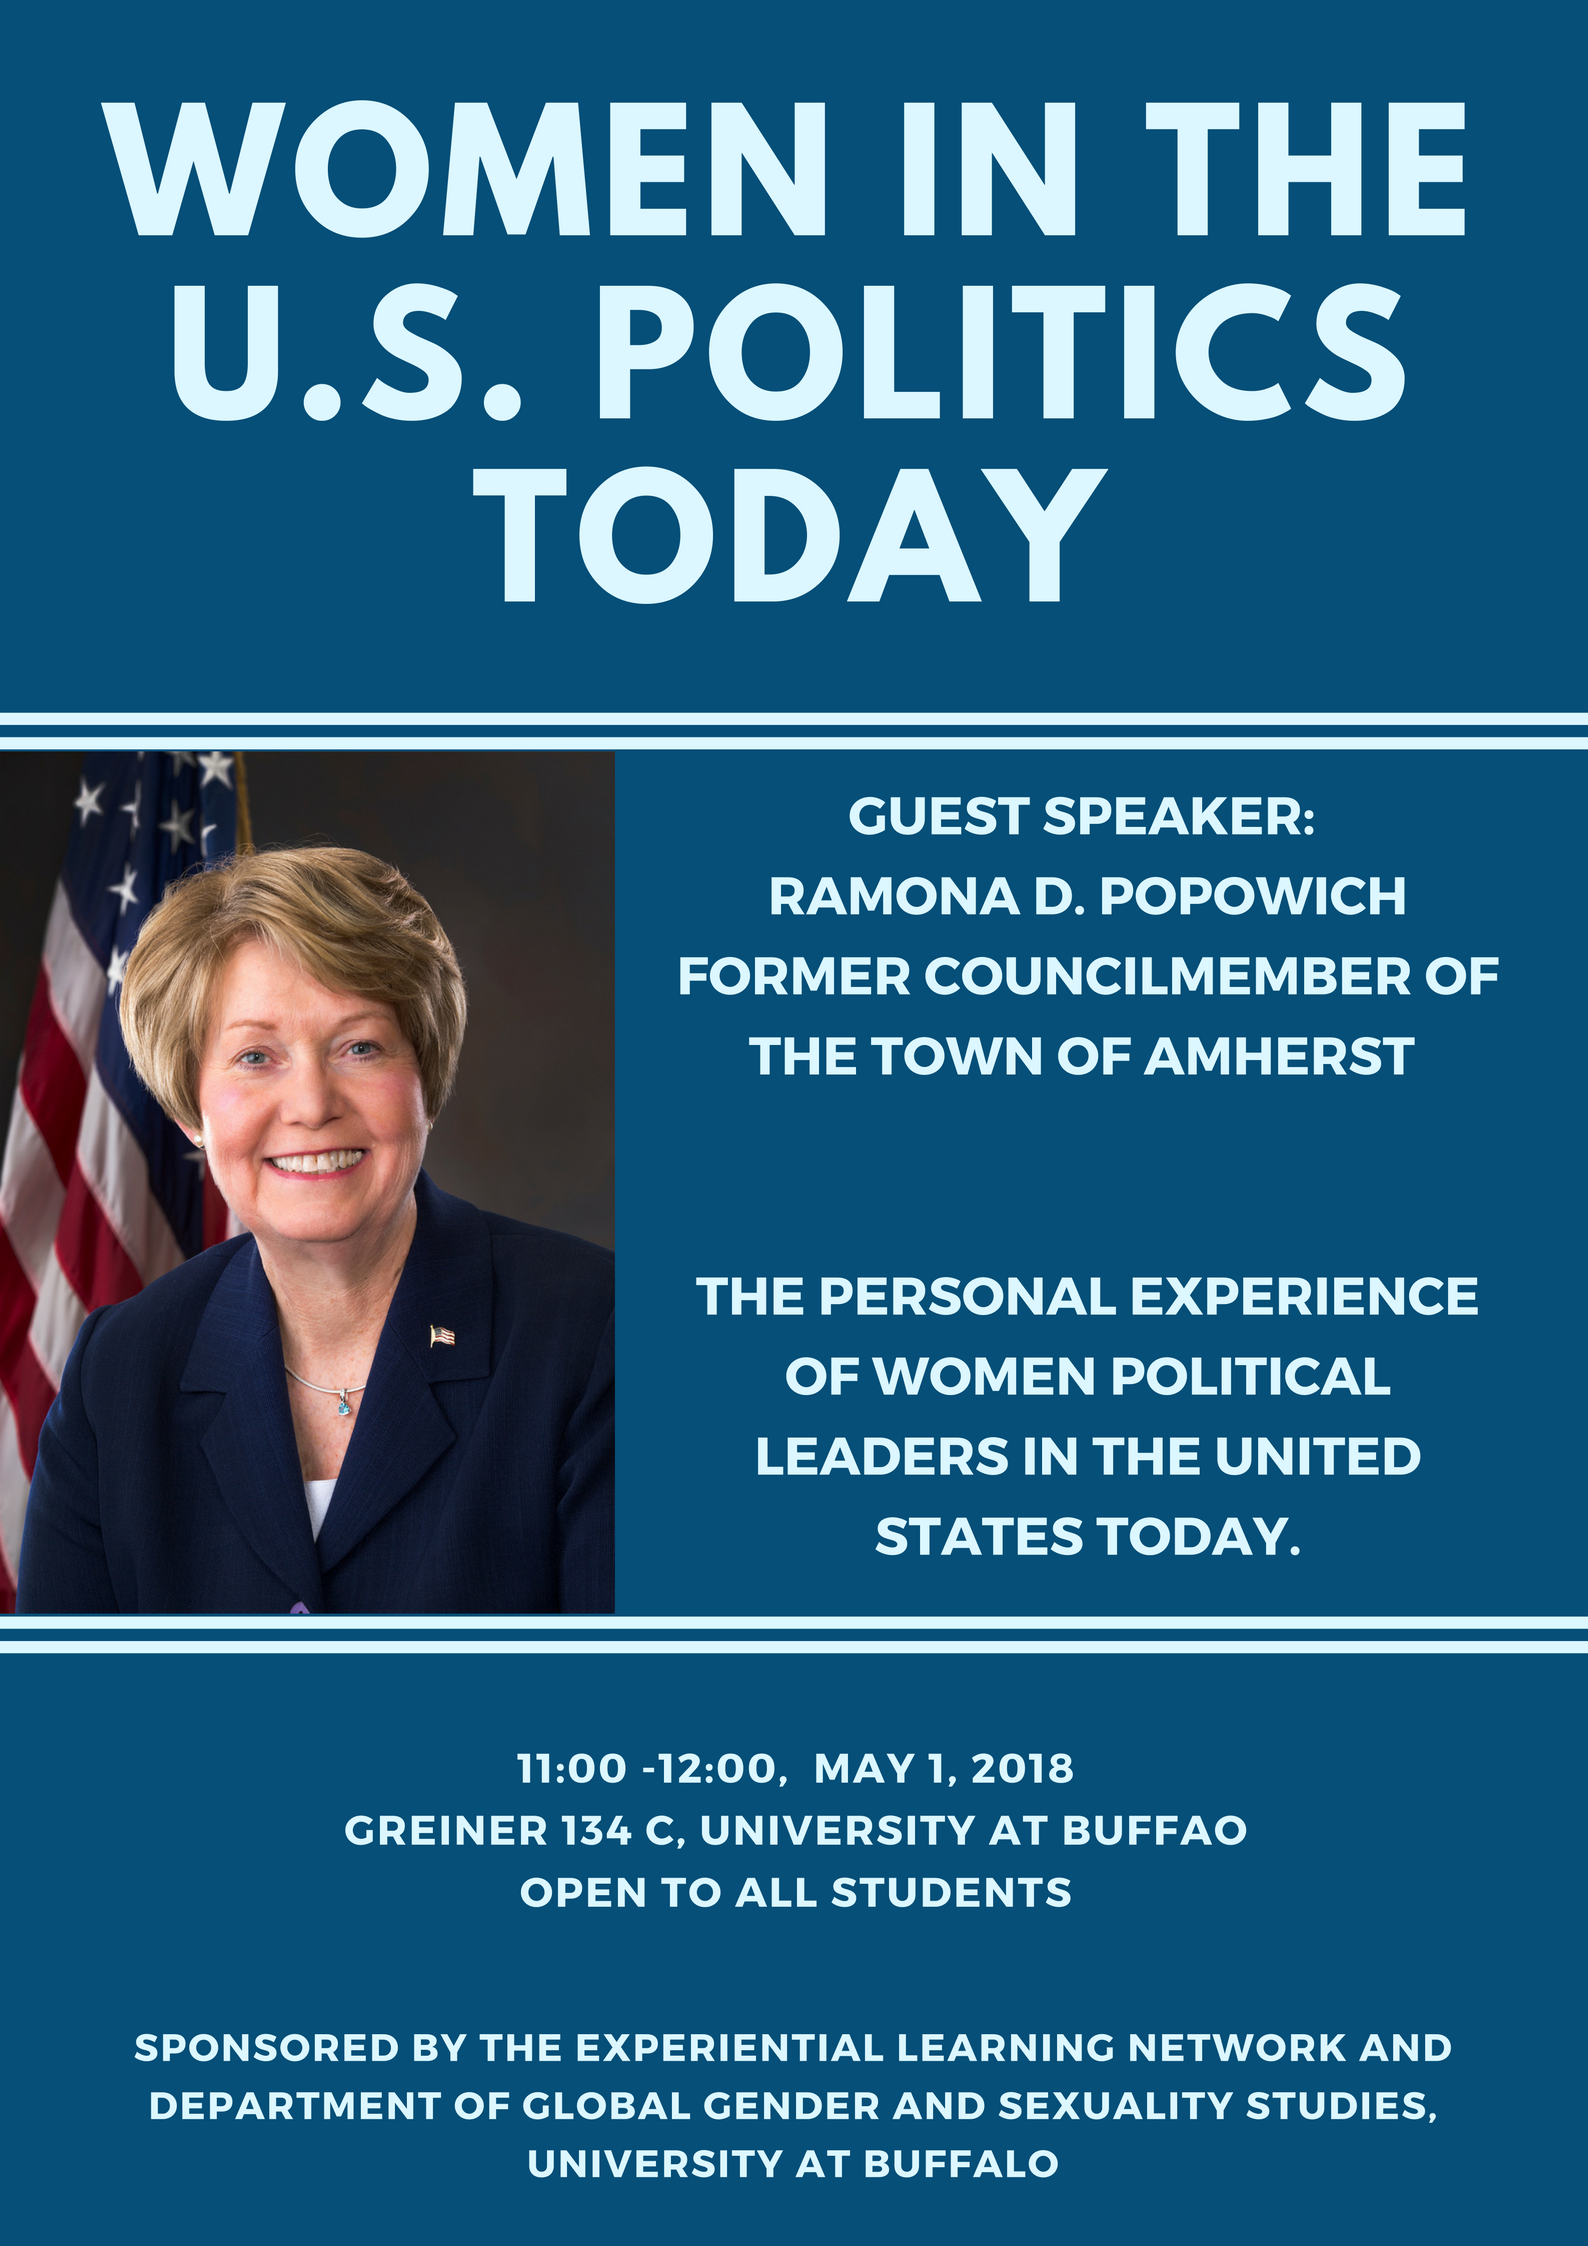 Guest Speaker:  Ramona D. Popowich Former Councilmember of the Town of Amherst